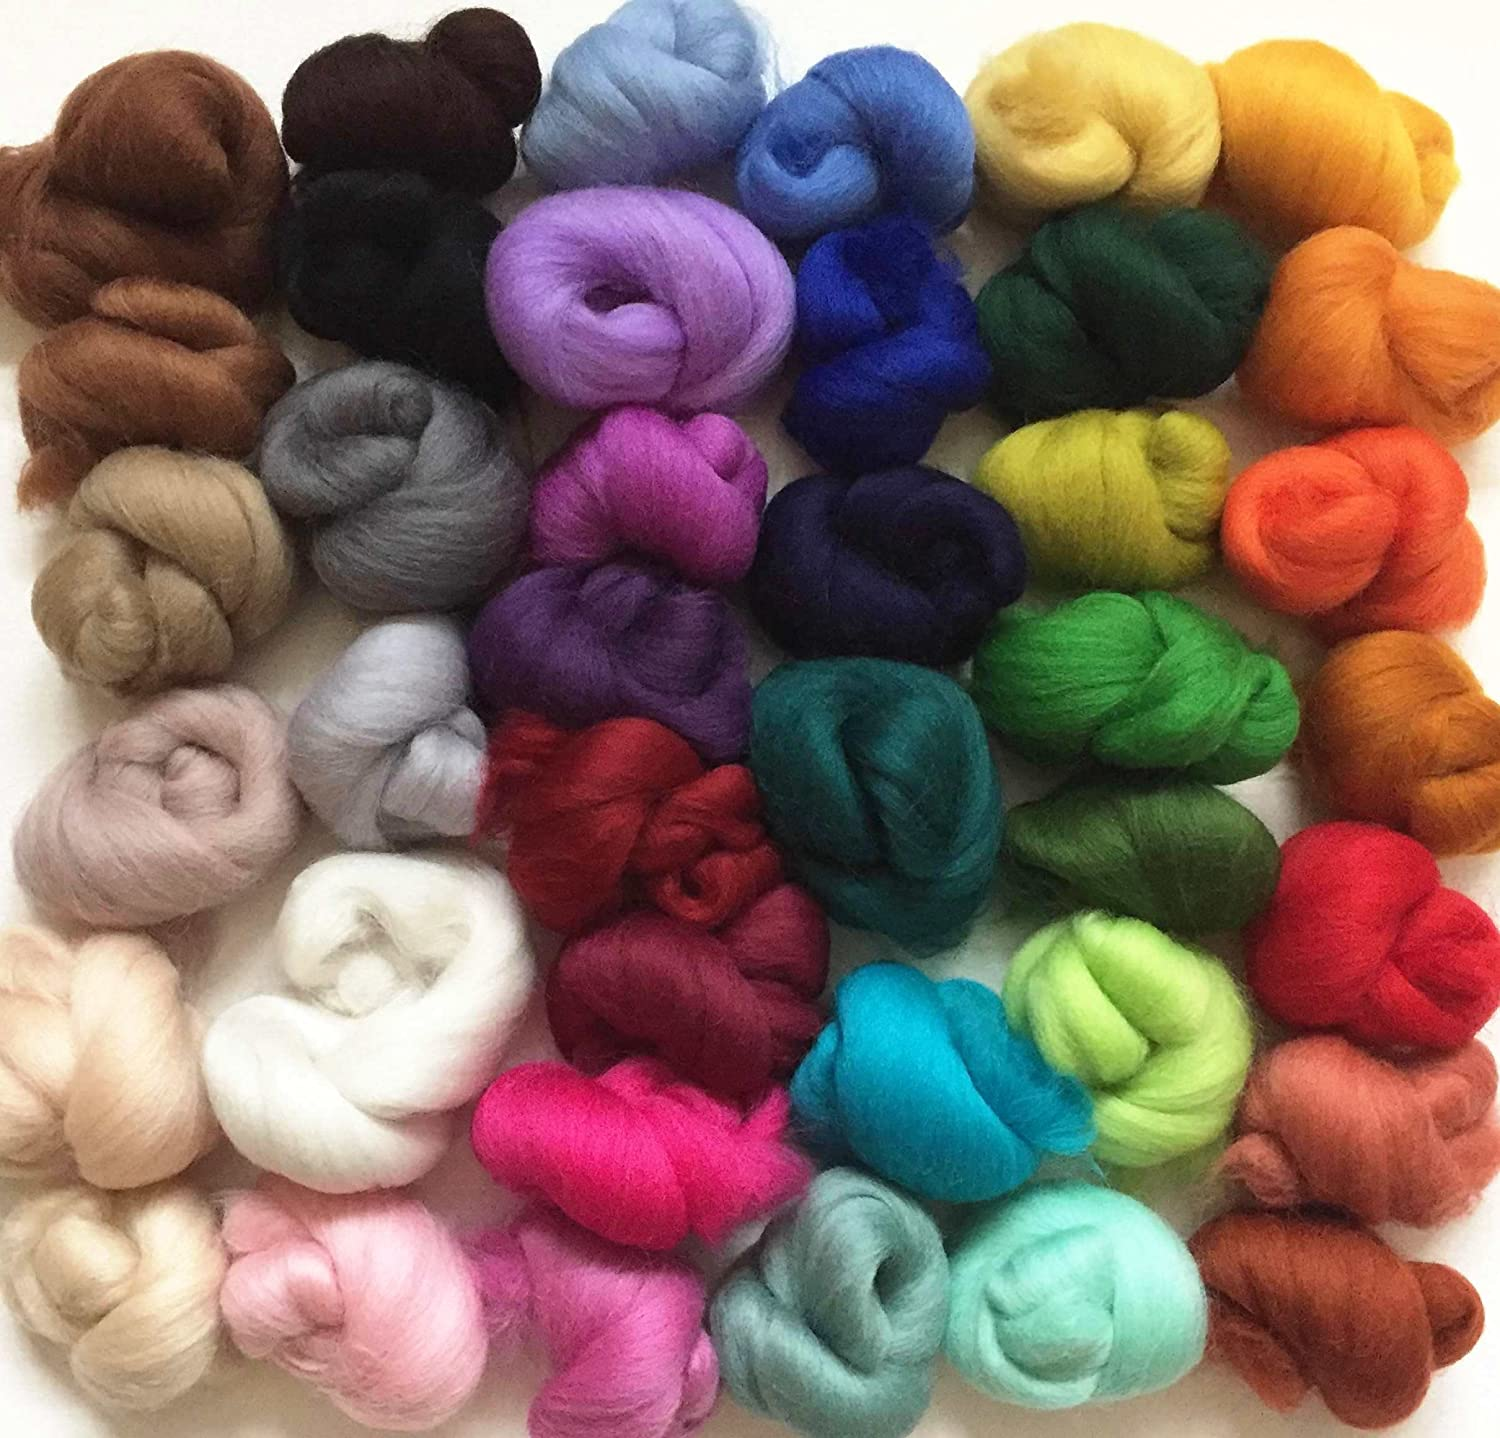 40 colour pack of Merino Wool Tops for Needle/Wet Felting approx 120 gms Molten Designs